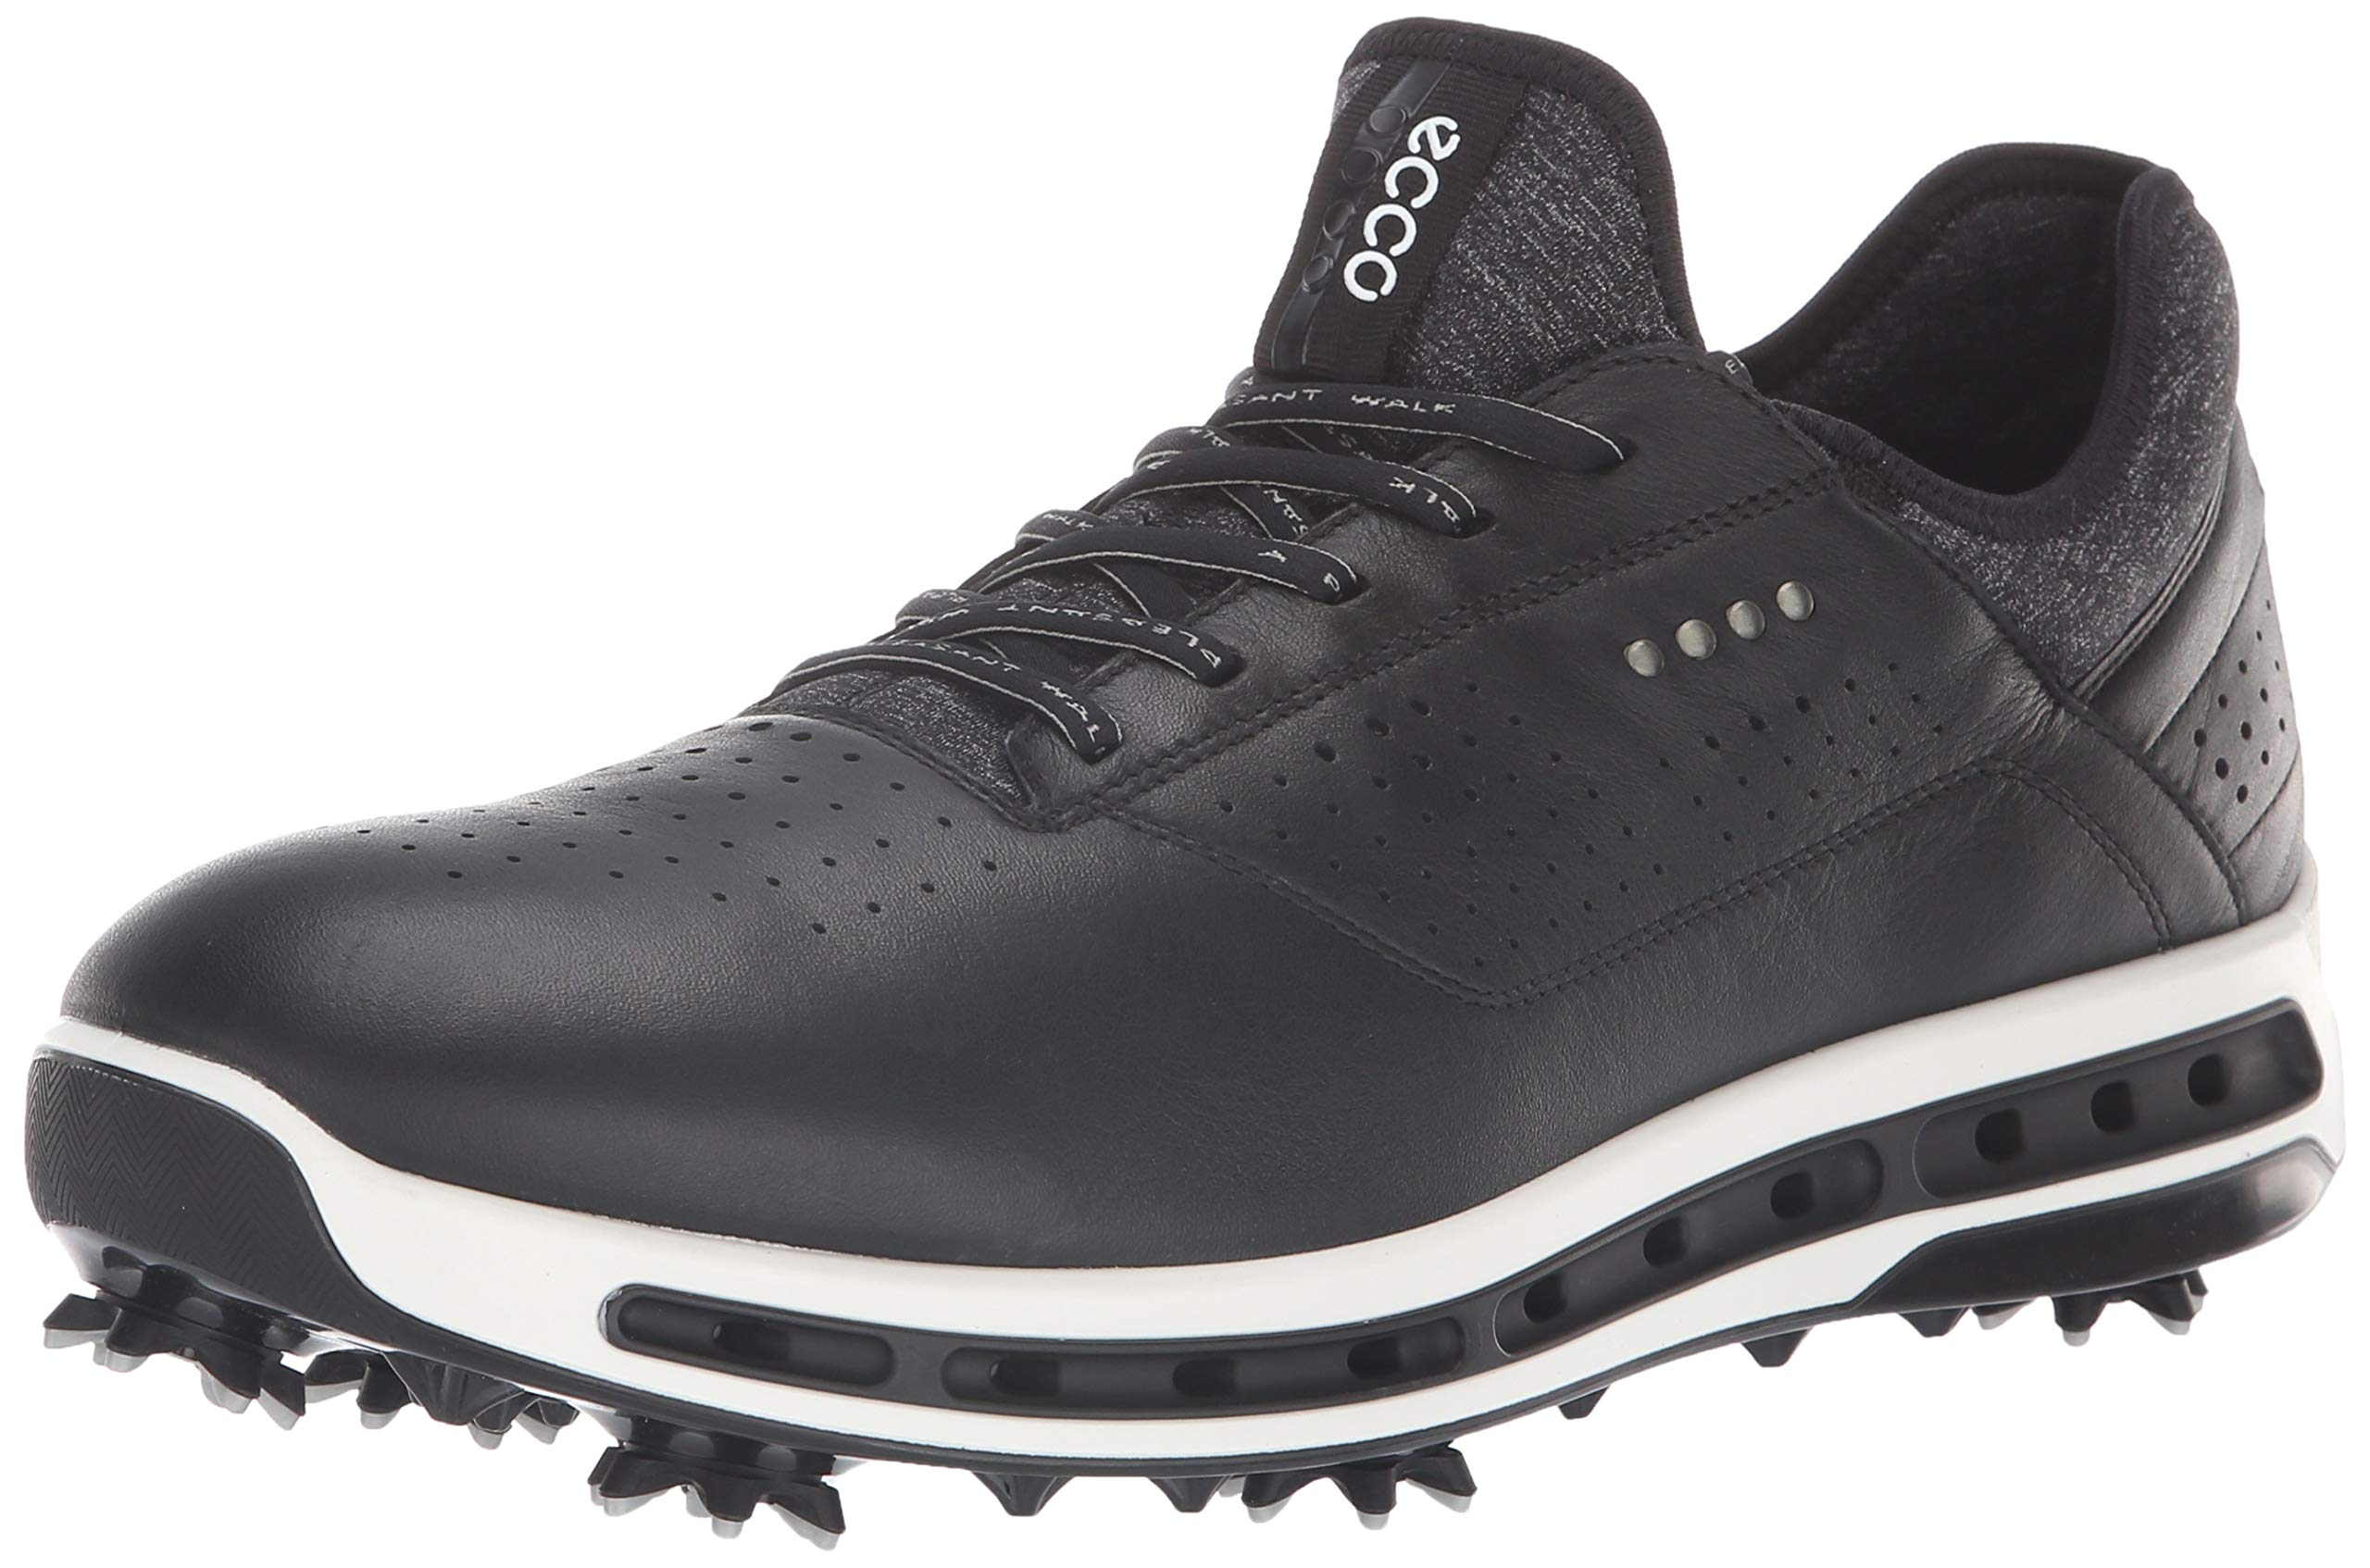 ECCO Men's Cool 18 Gore-tex Golf Shoe, Black, 8 M US by ECCO